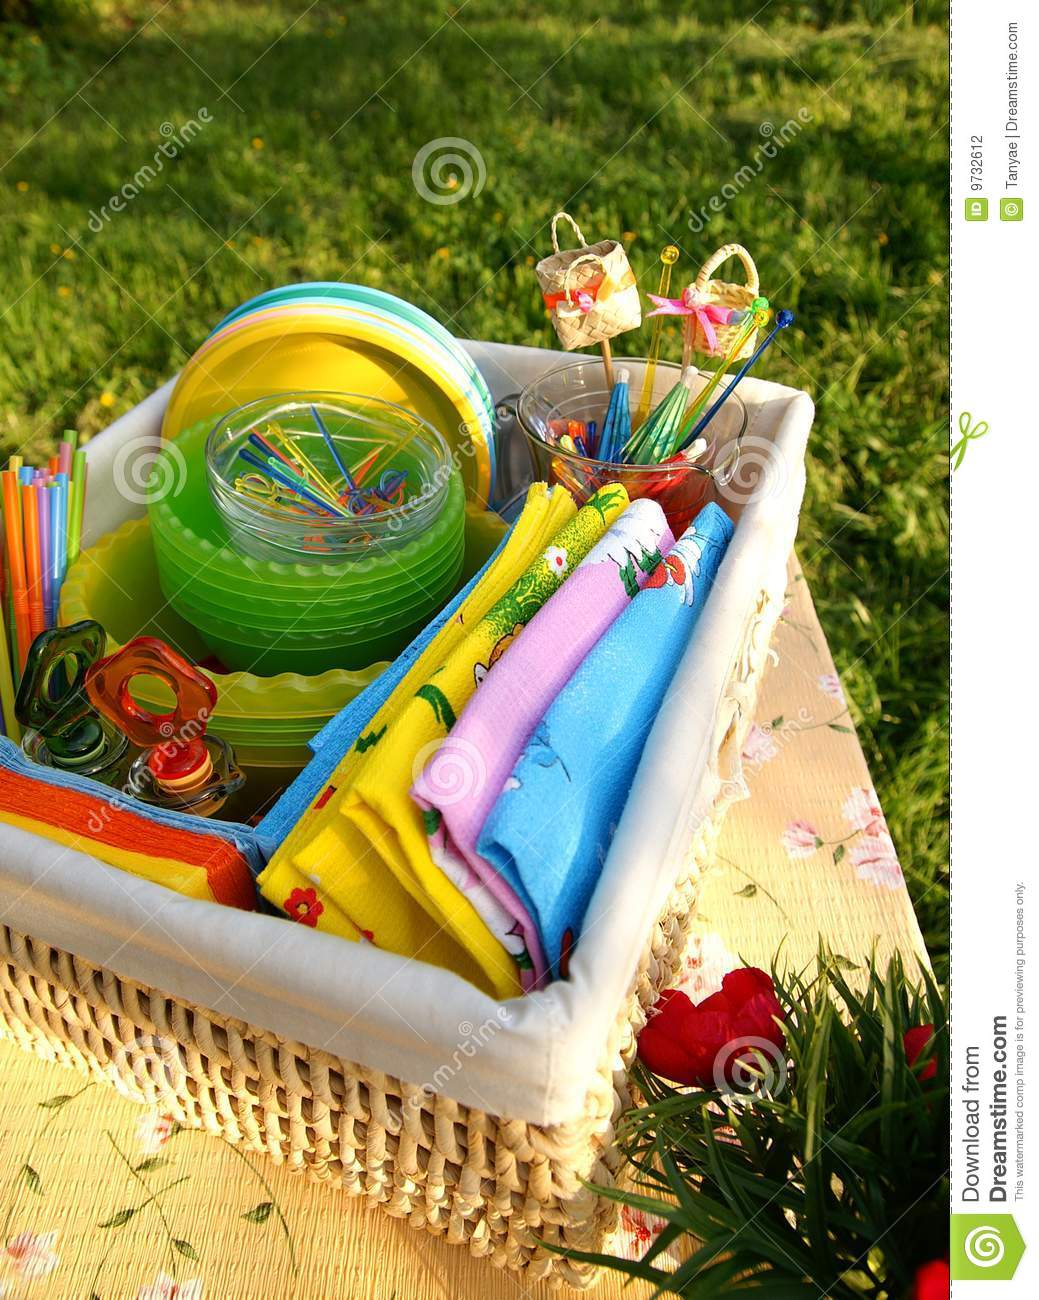 Bright color summer picnic accessories